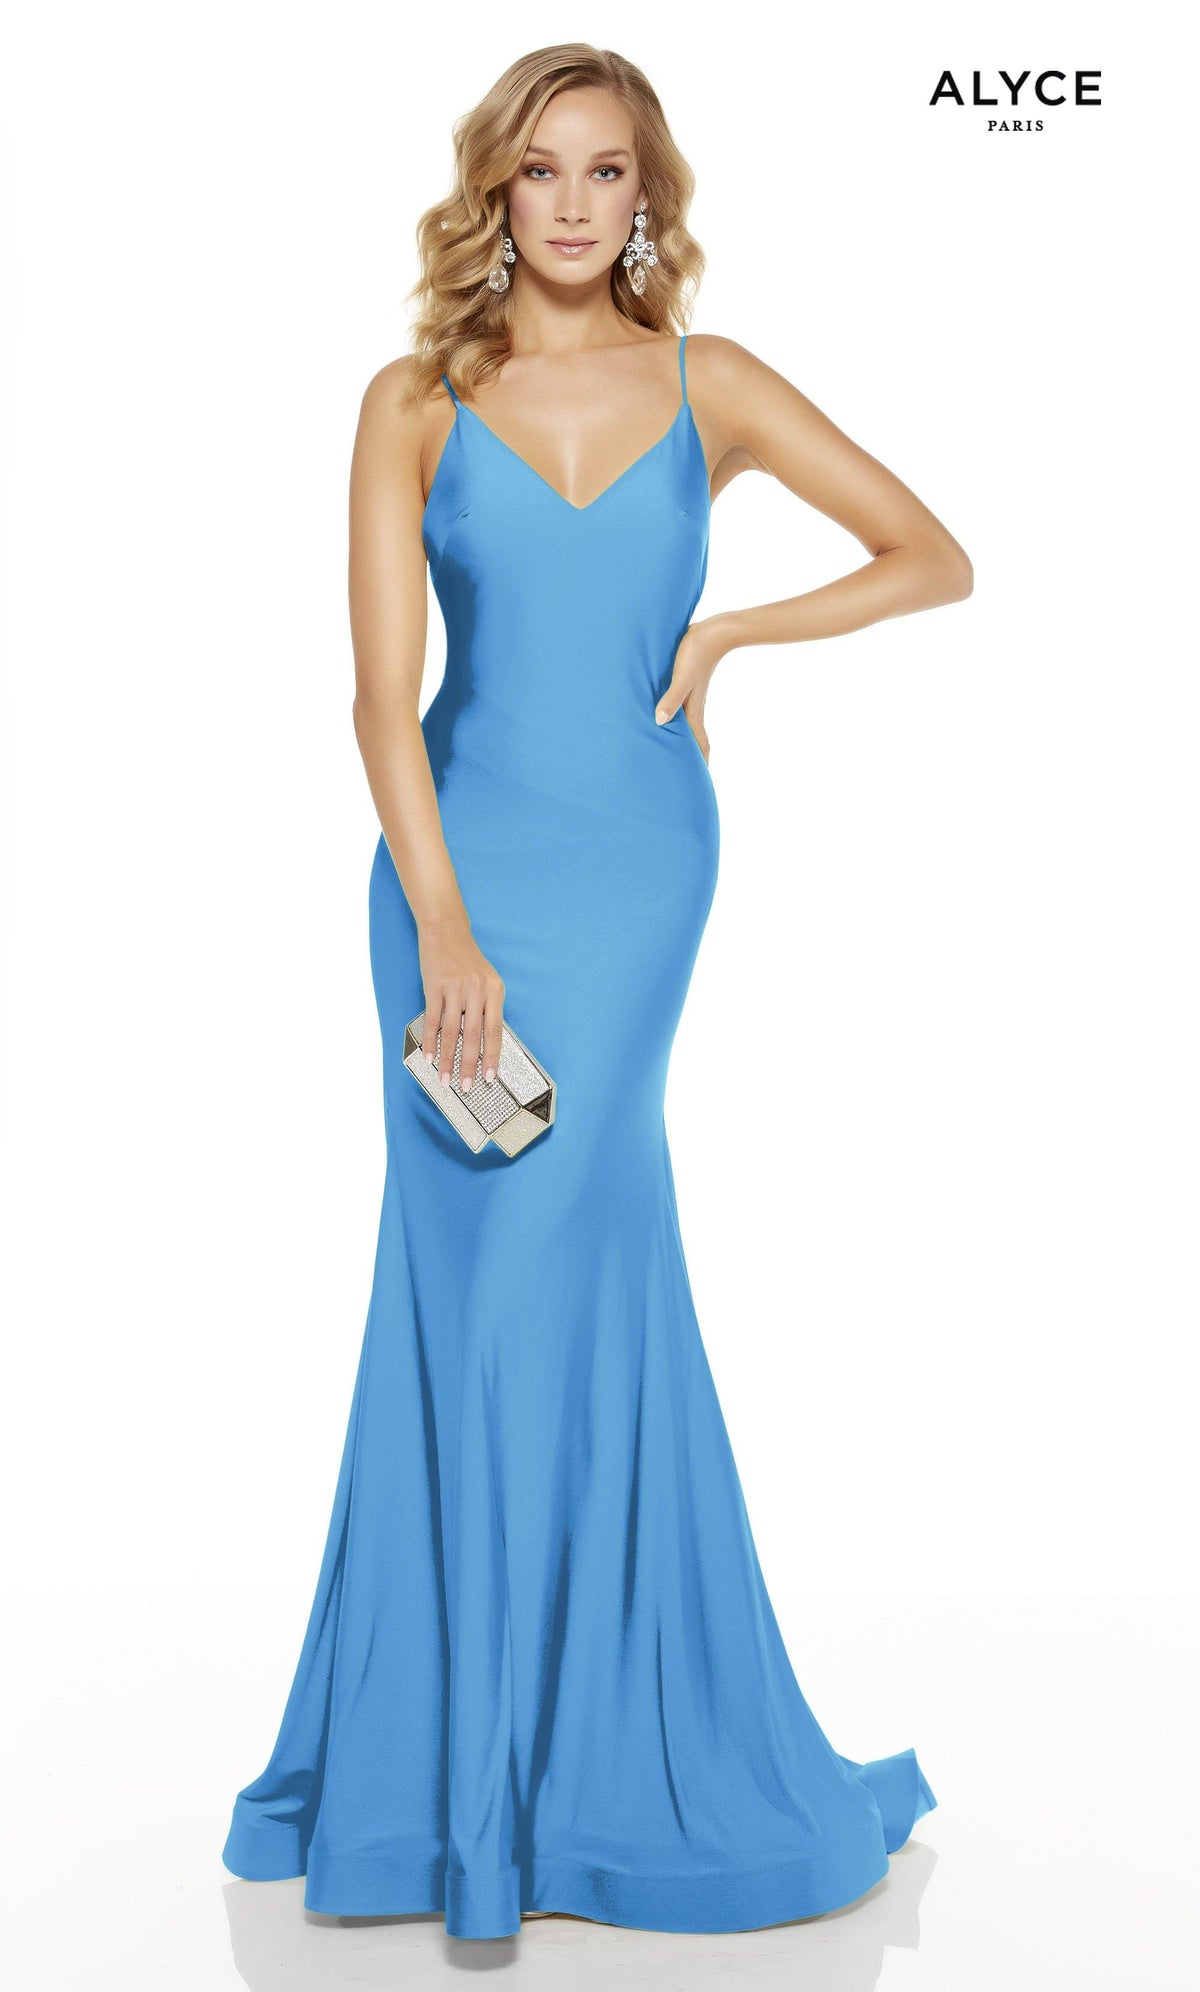 Ocean Blue mermaid prom dress with a v-neckline